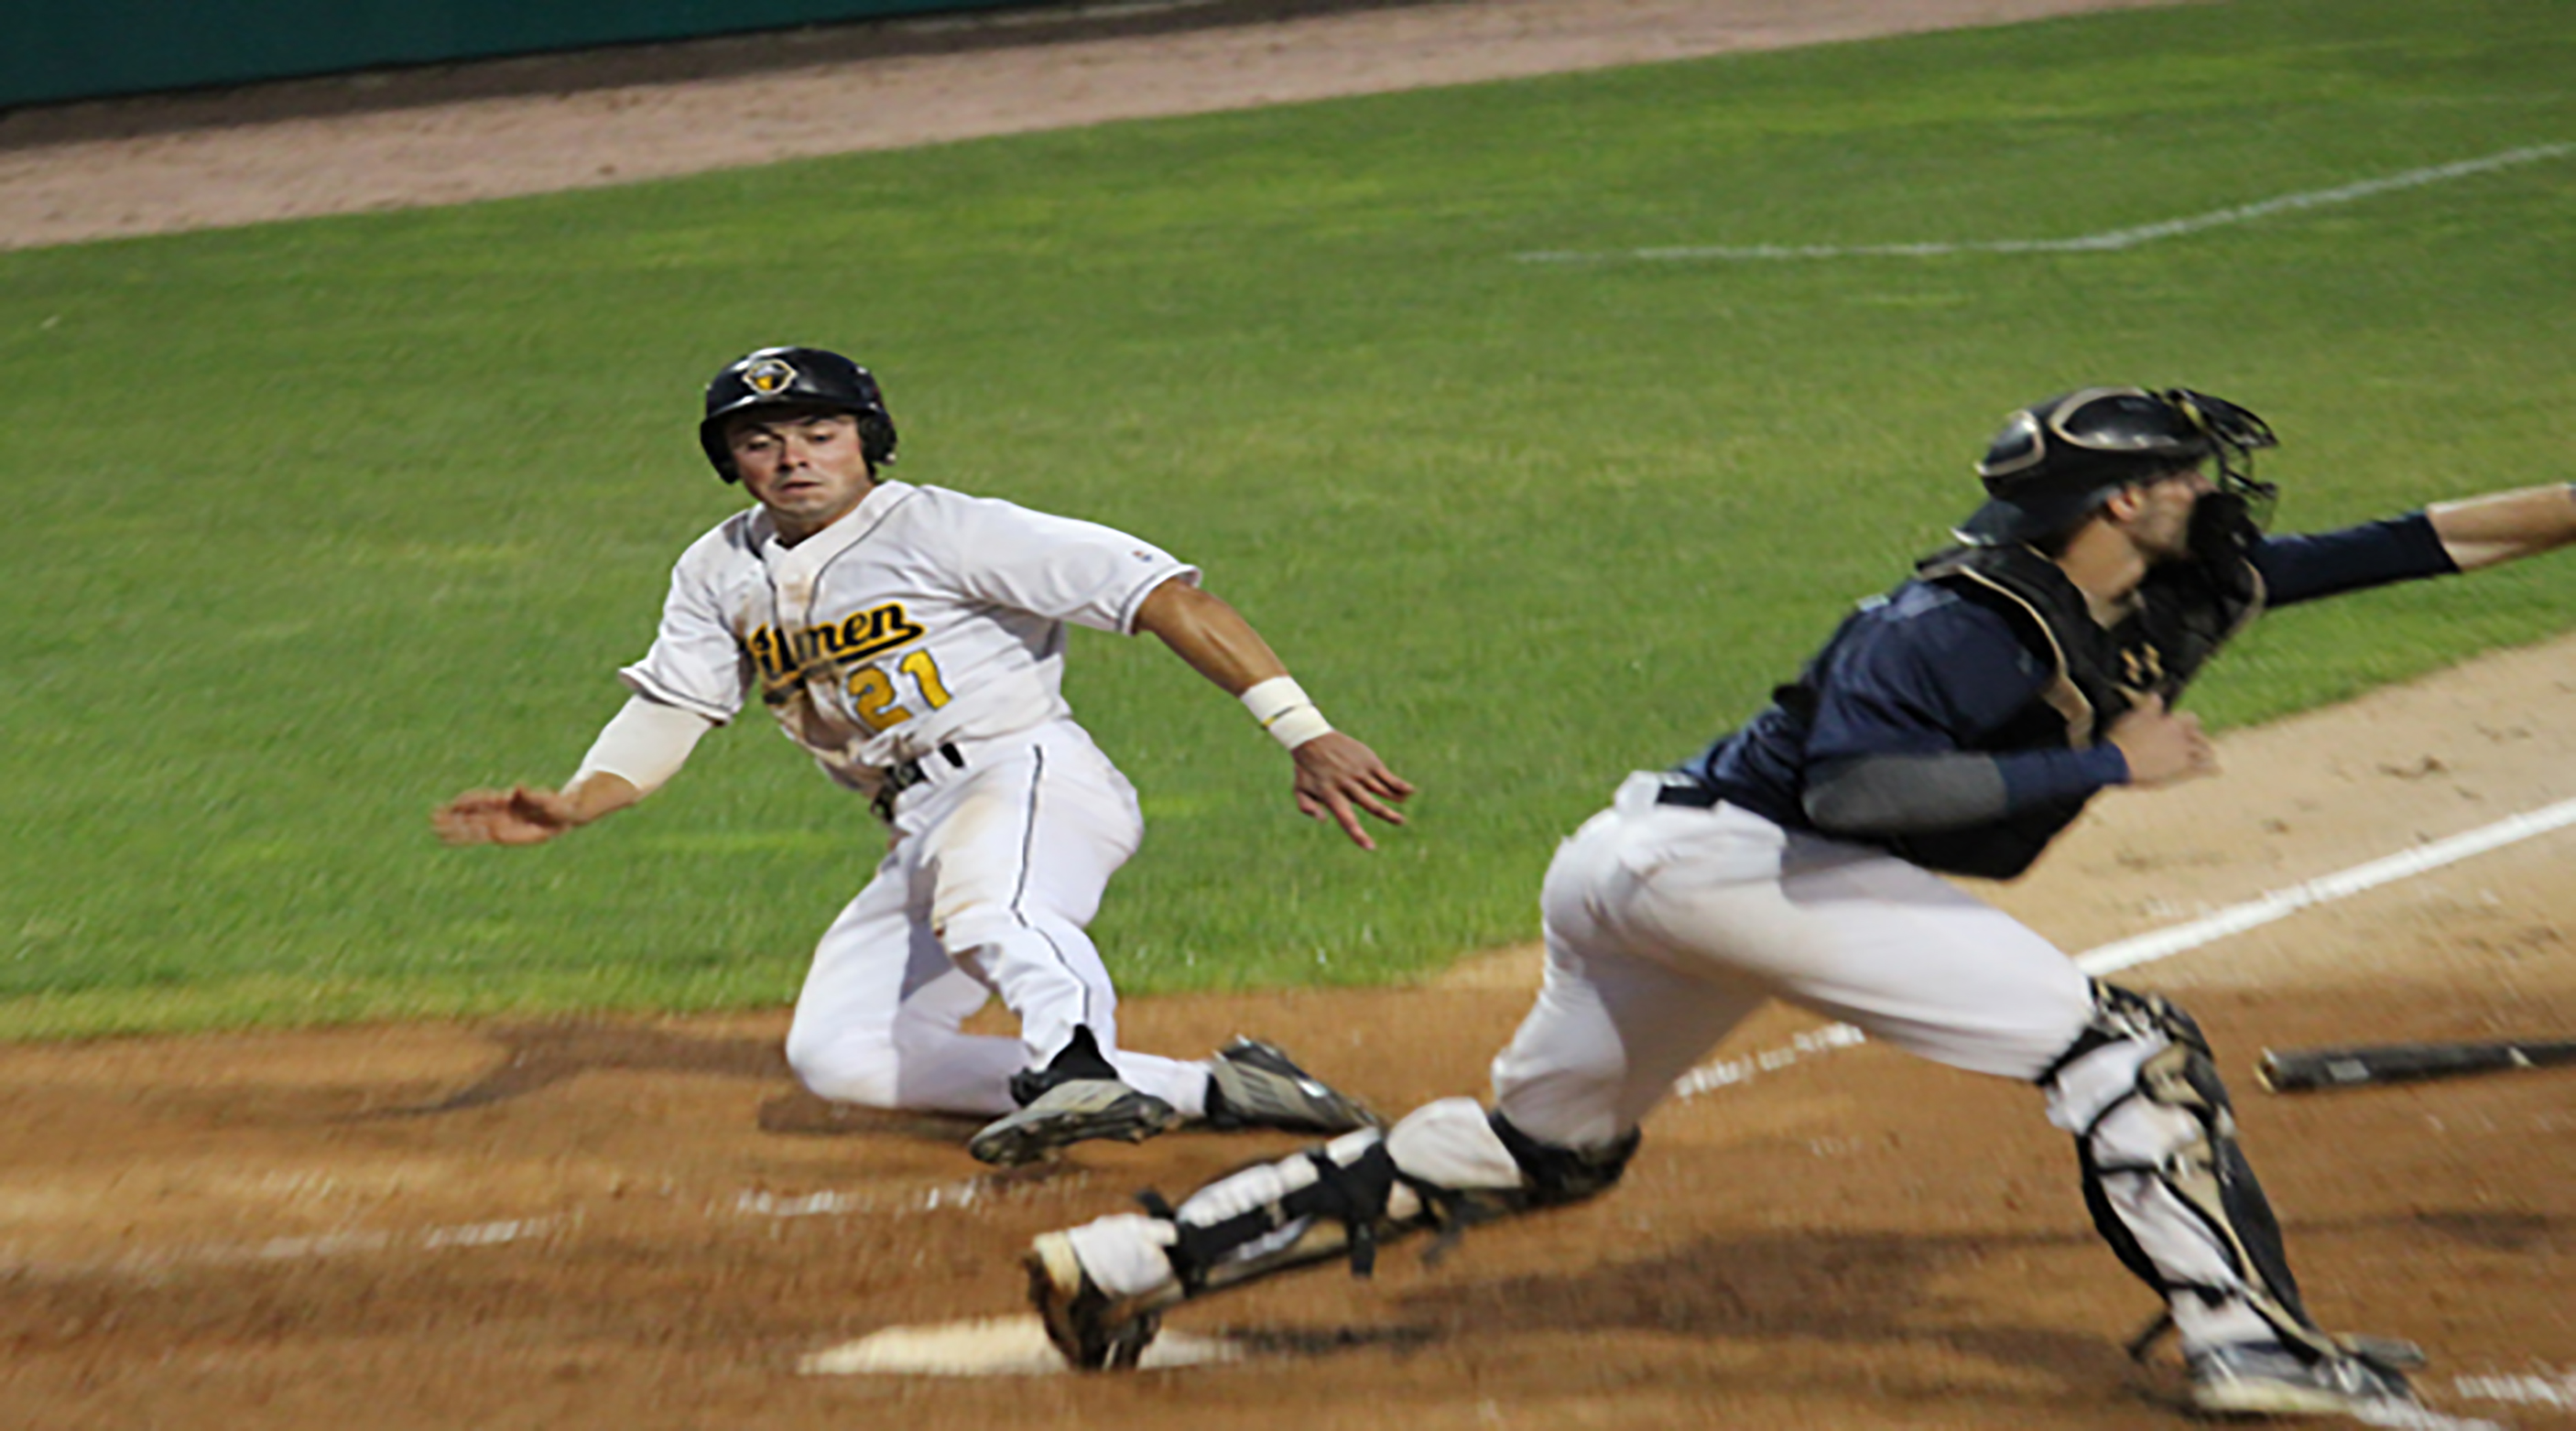 Oilmen walk off with extra inning triumph after seesaw affair with Hounds